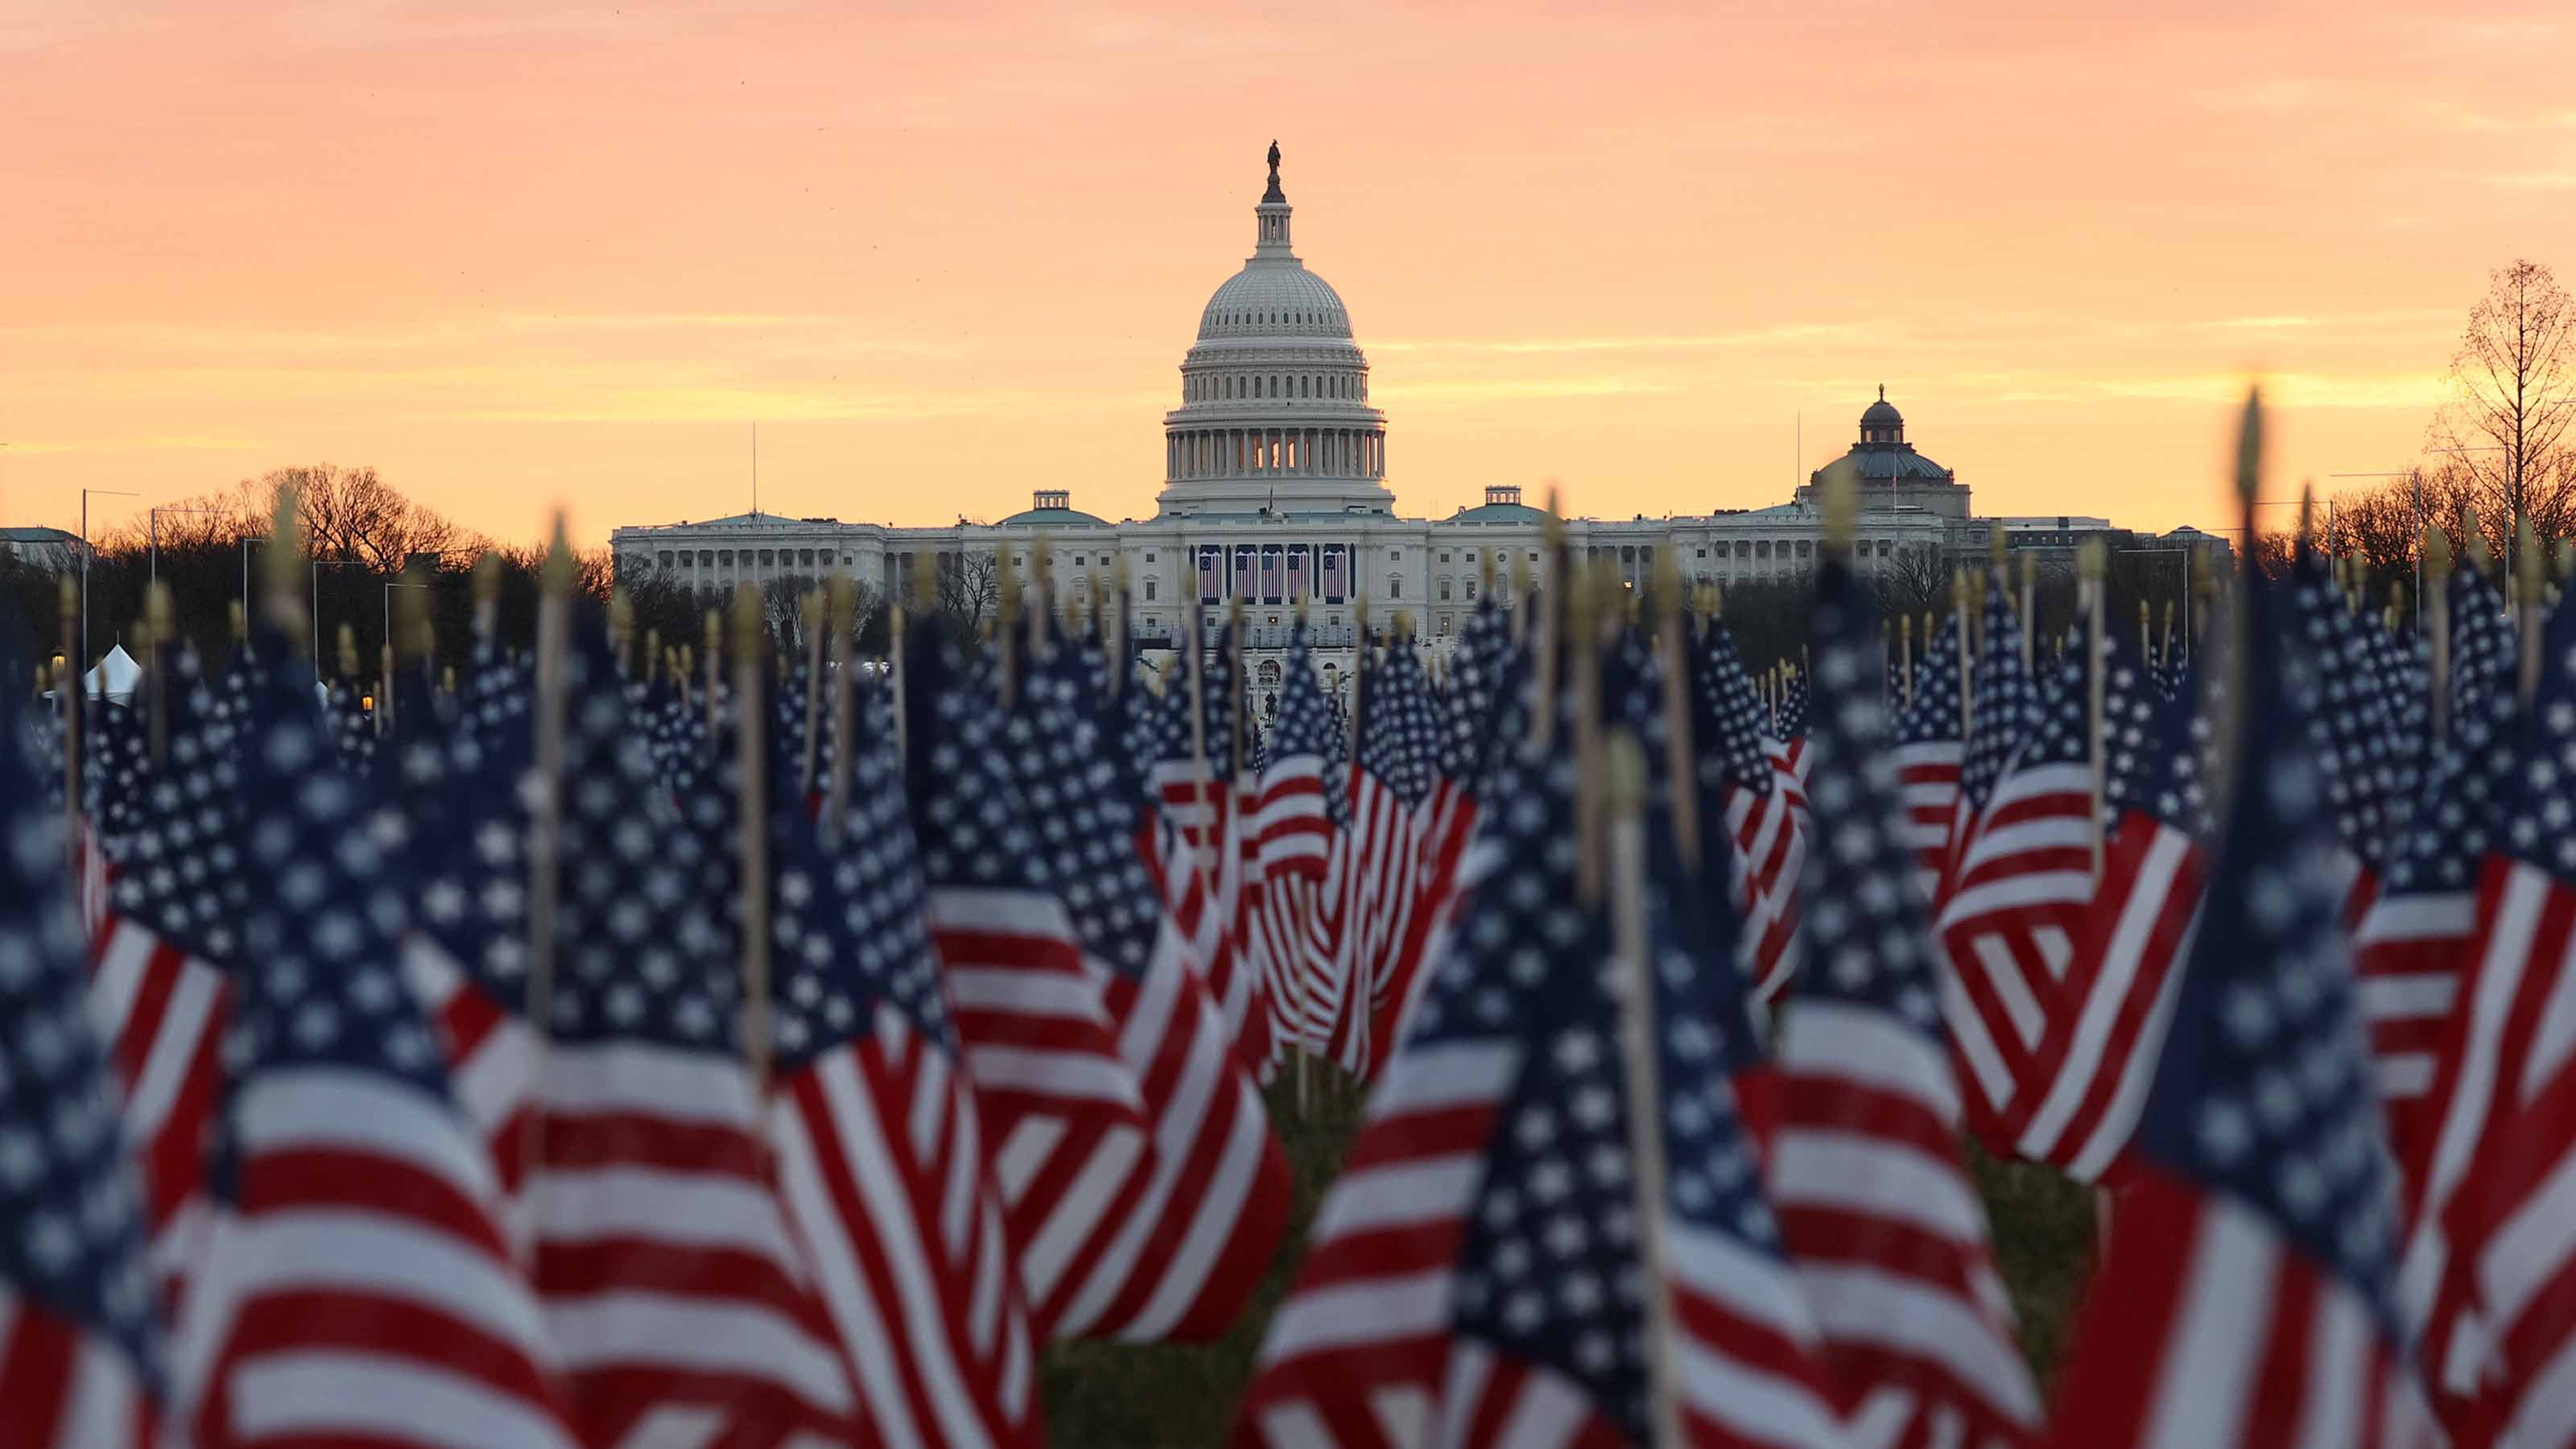 Federal Government Closed Christmas Eve 2021 Is The Stock Market Open On Inauguration Day 2021 Kiplinger